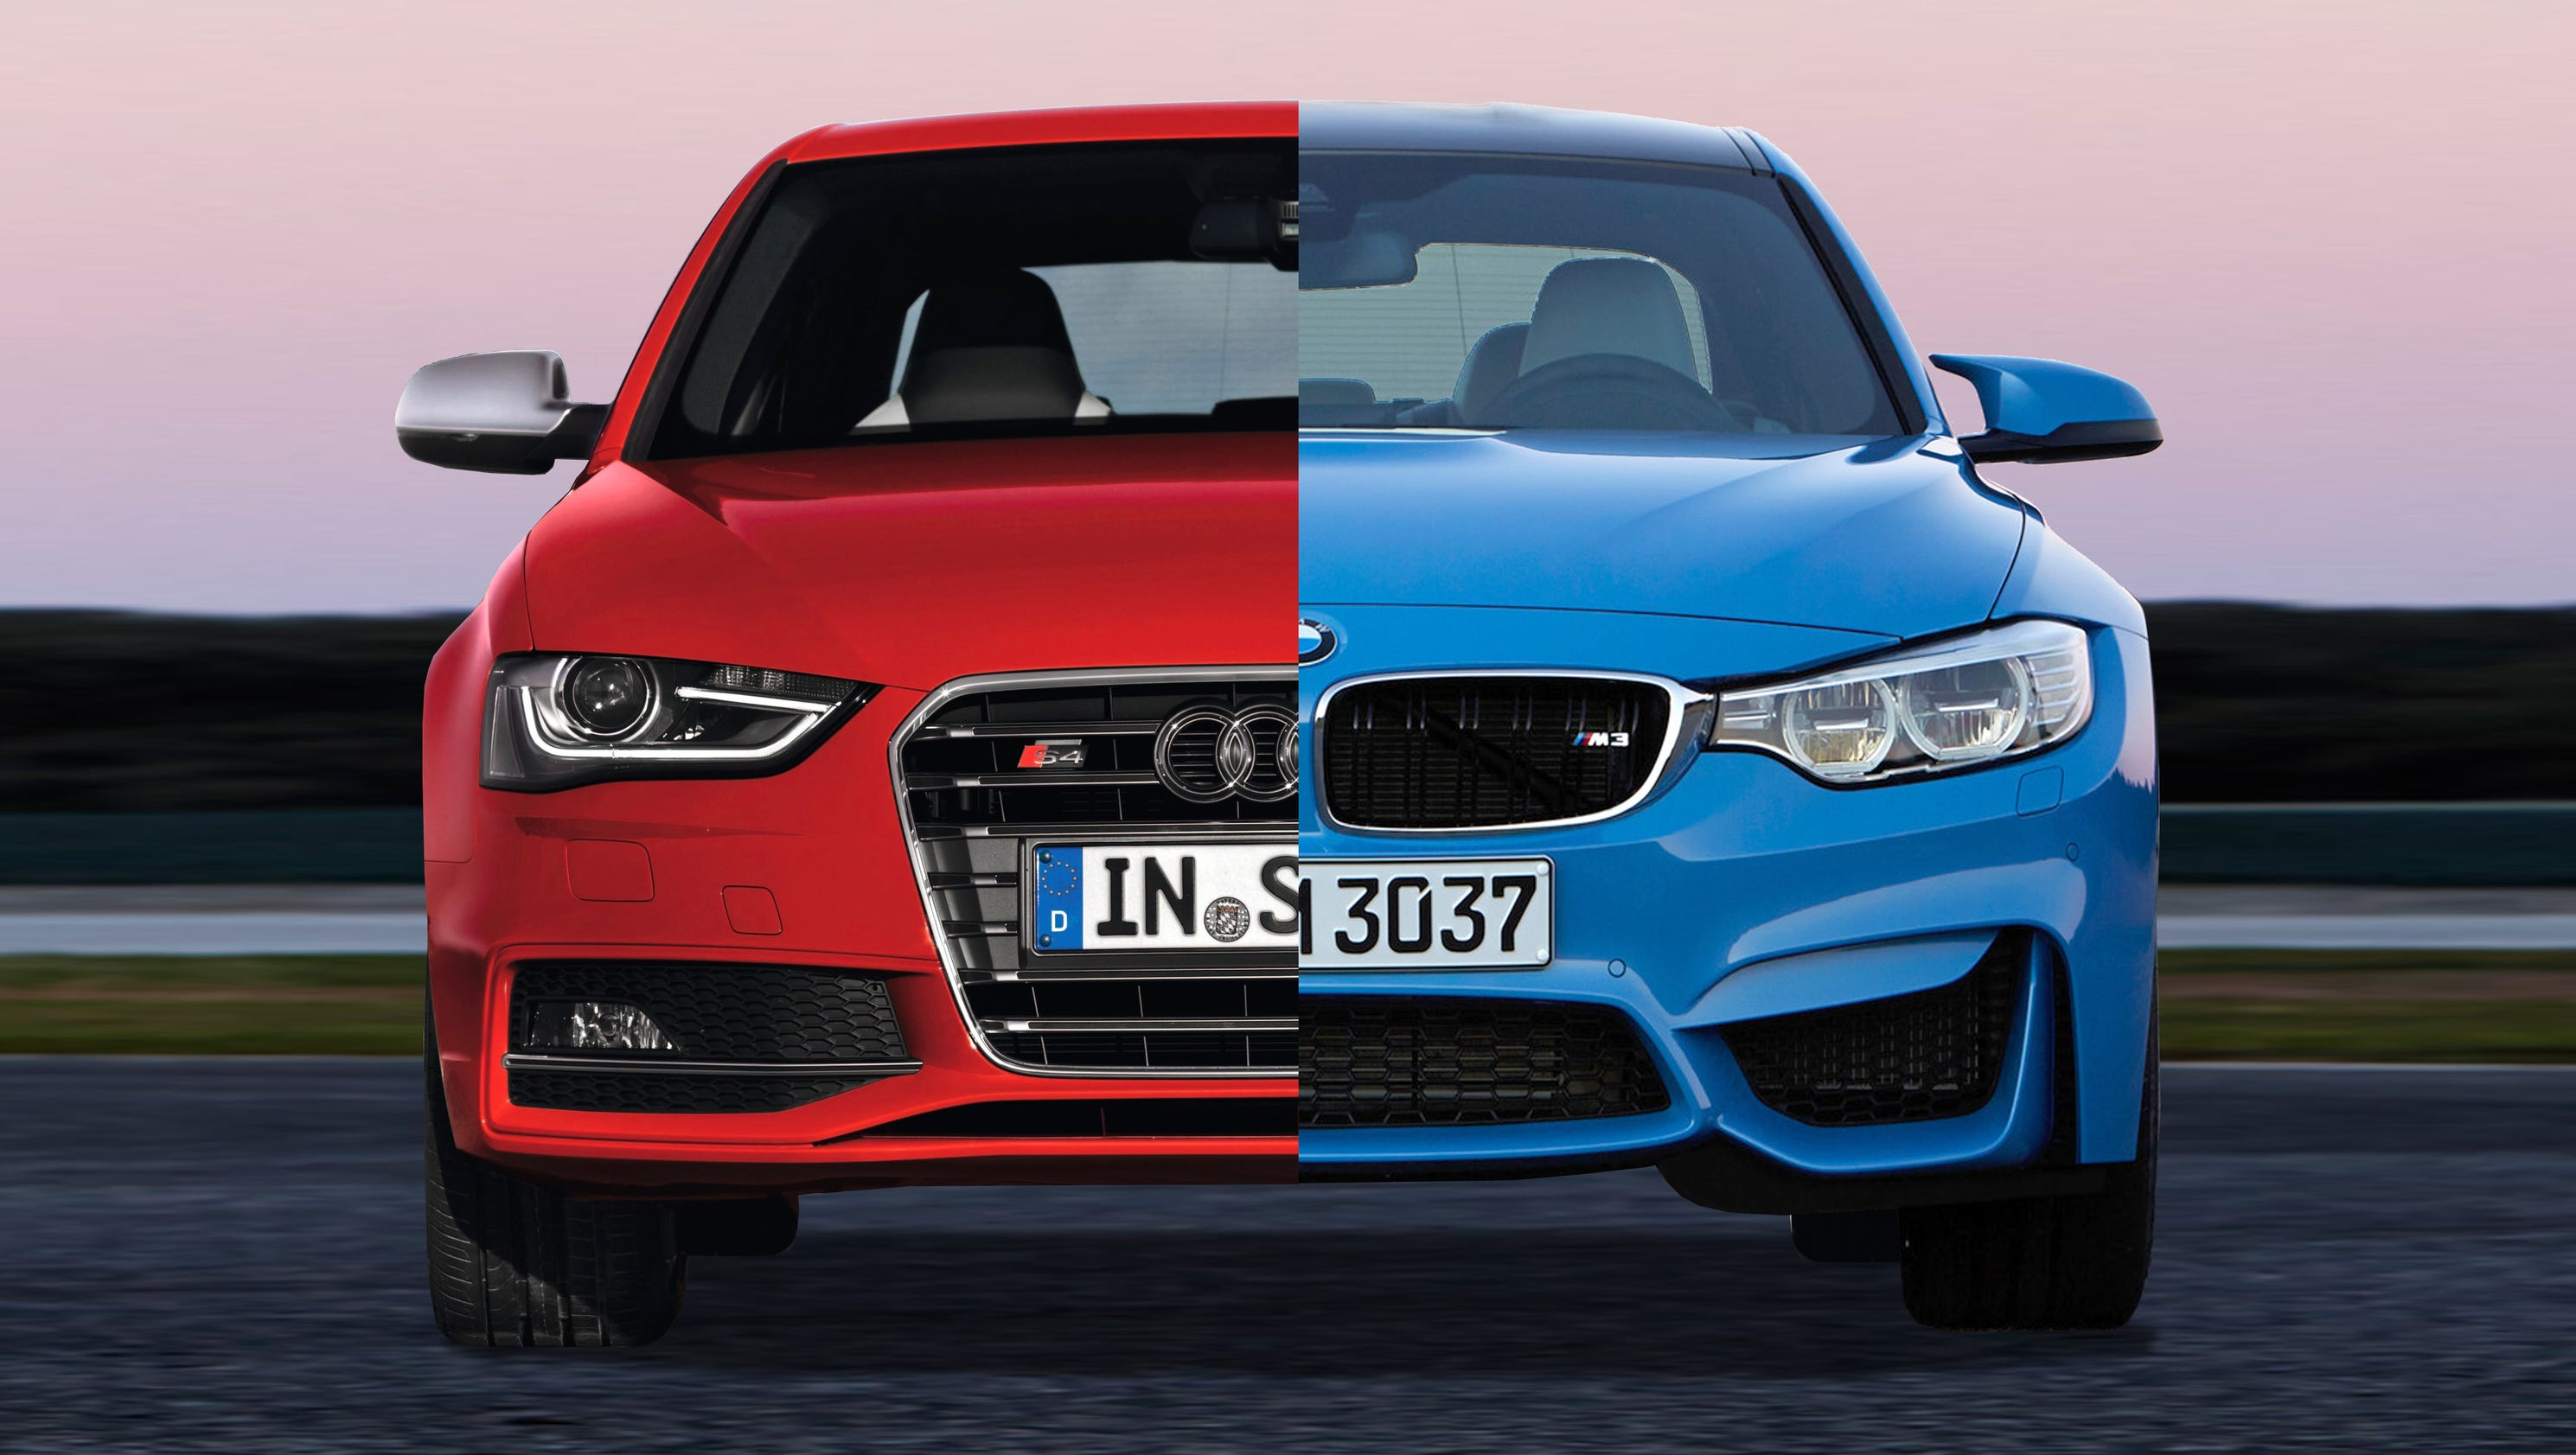 Compare S4 Audi And Bmw M3 | Autos Post